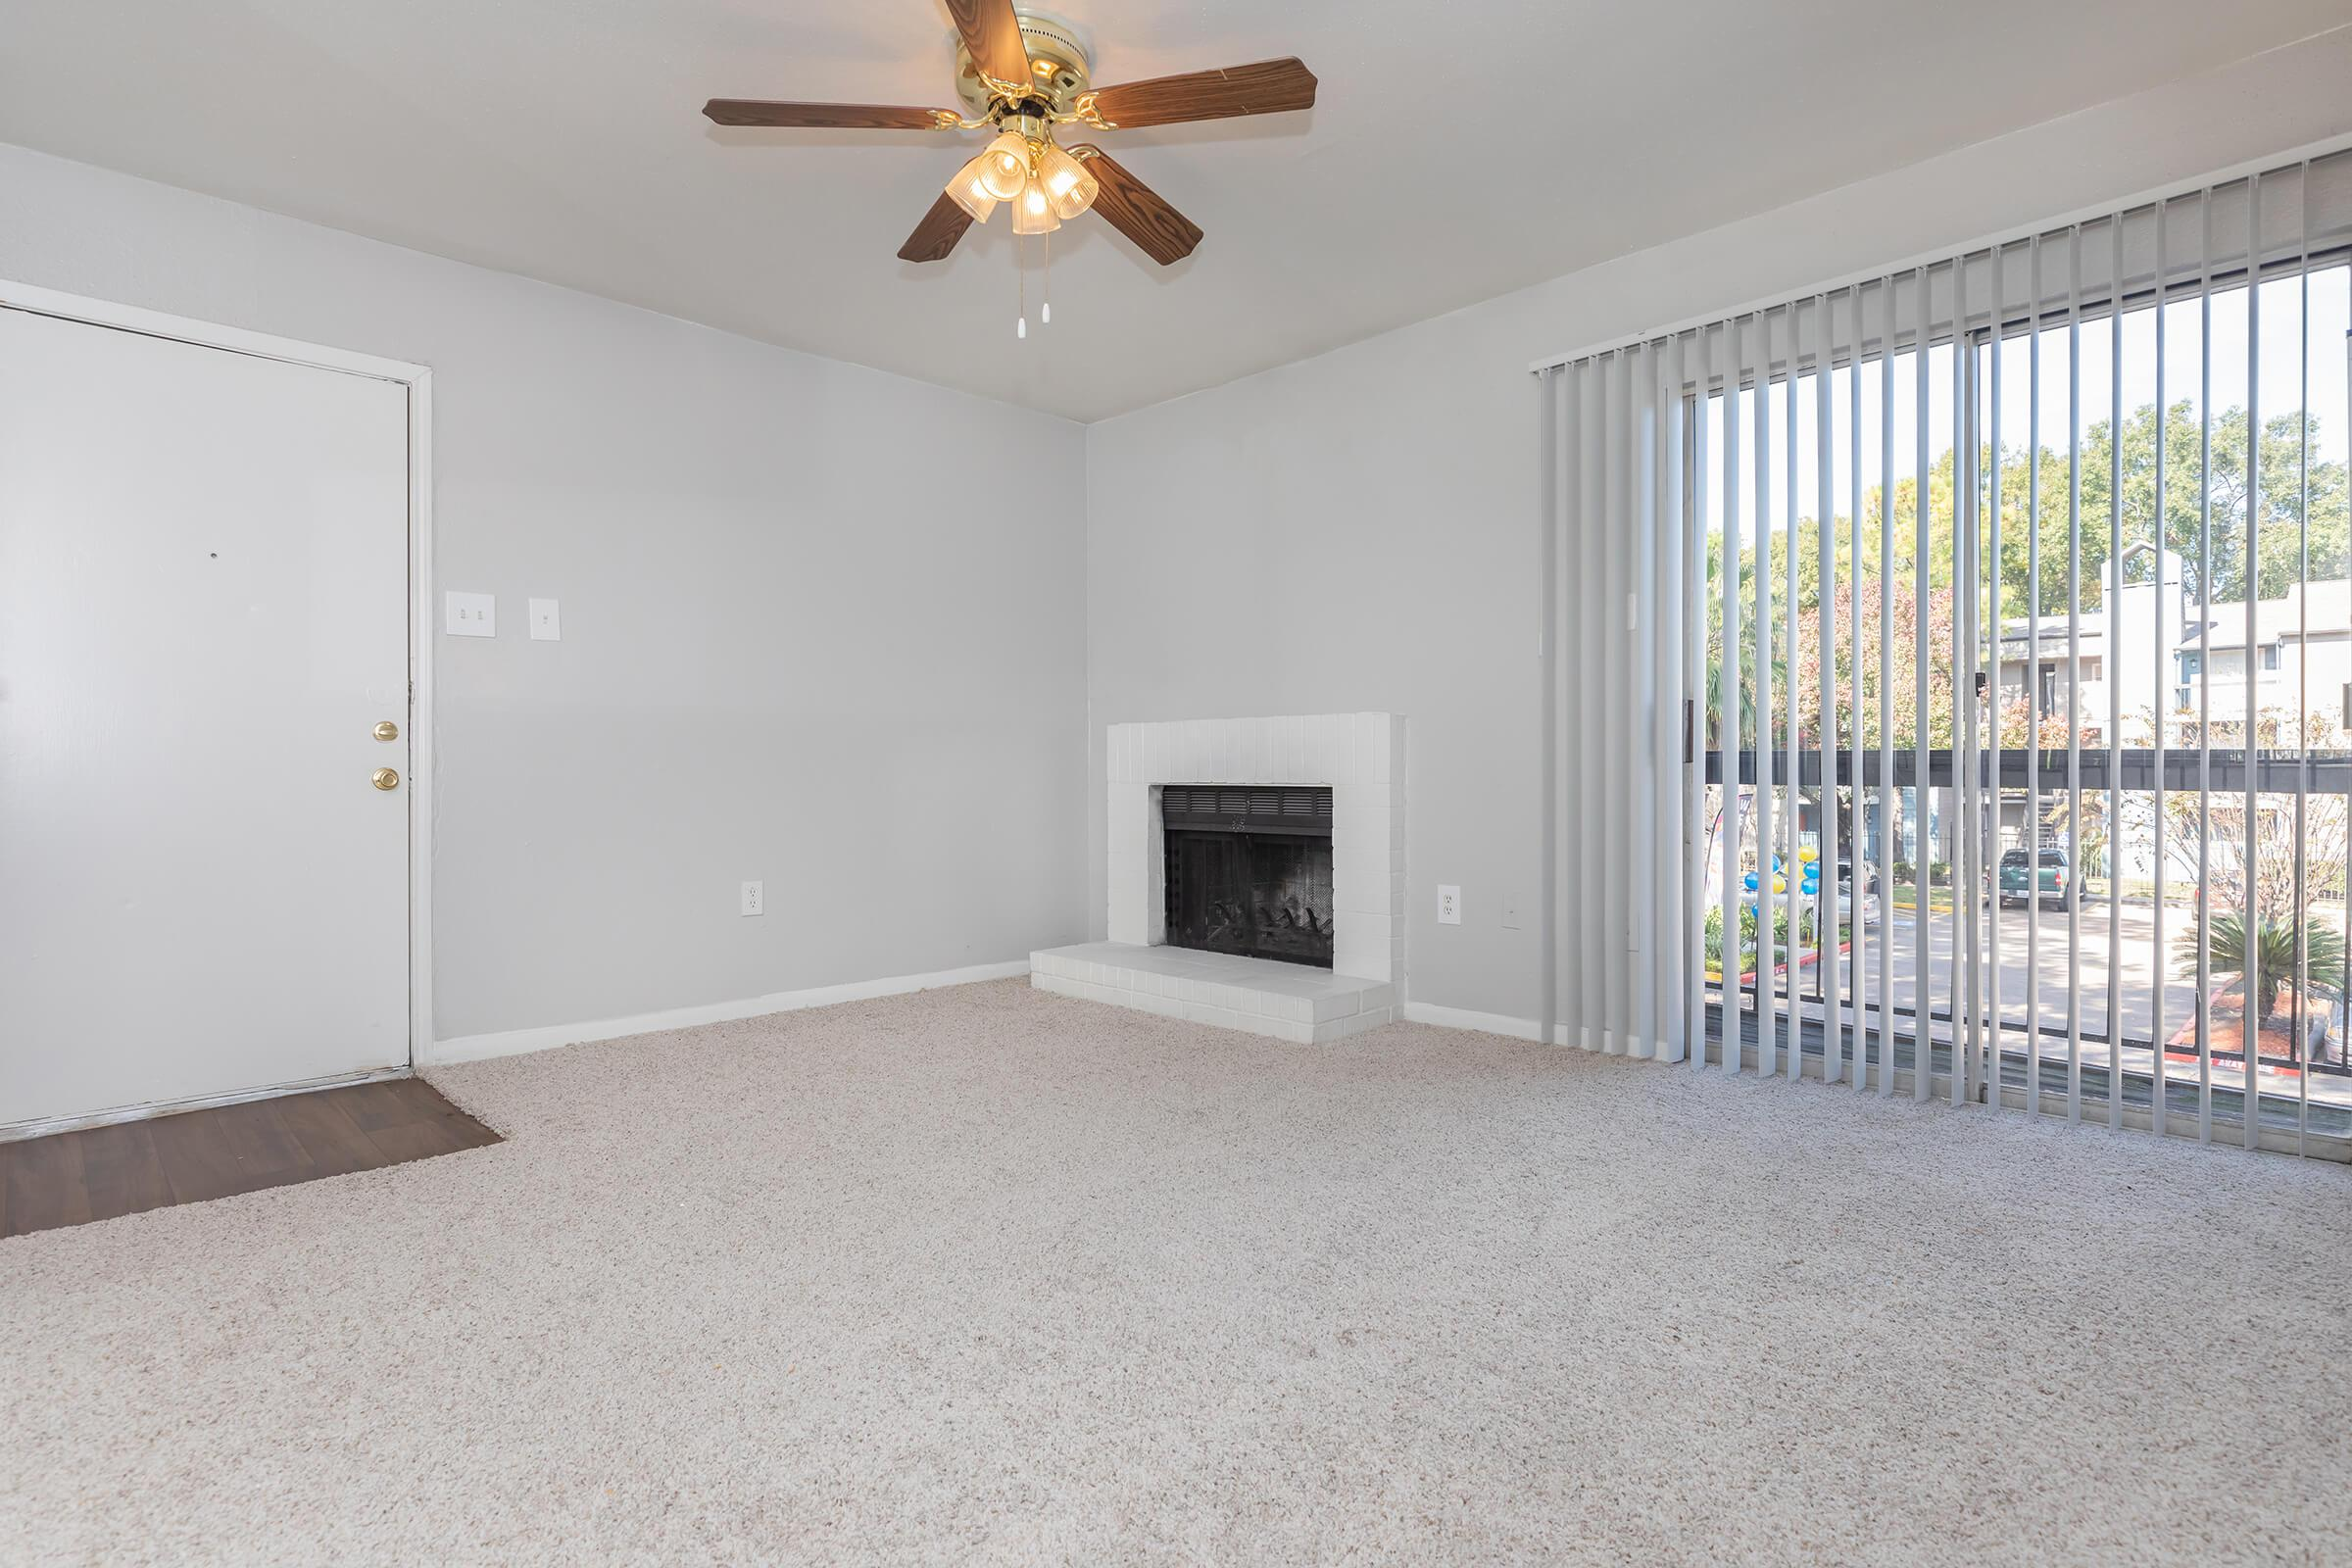 APARTMENT WITH FIREPLACE IN HOUSTON, TX